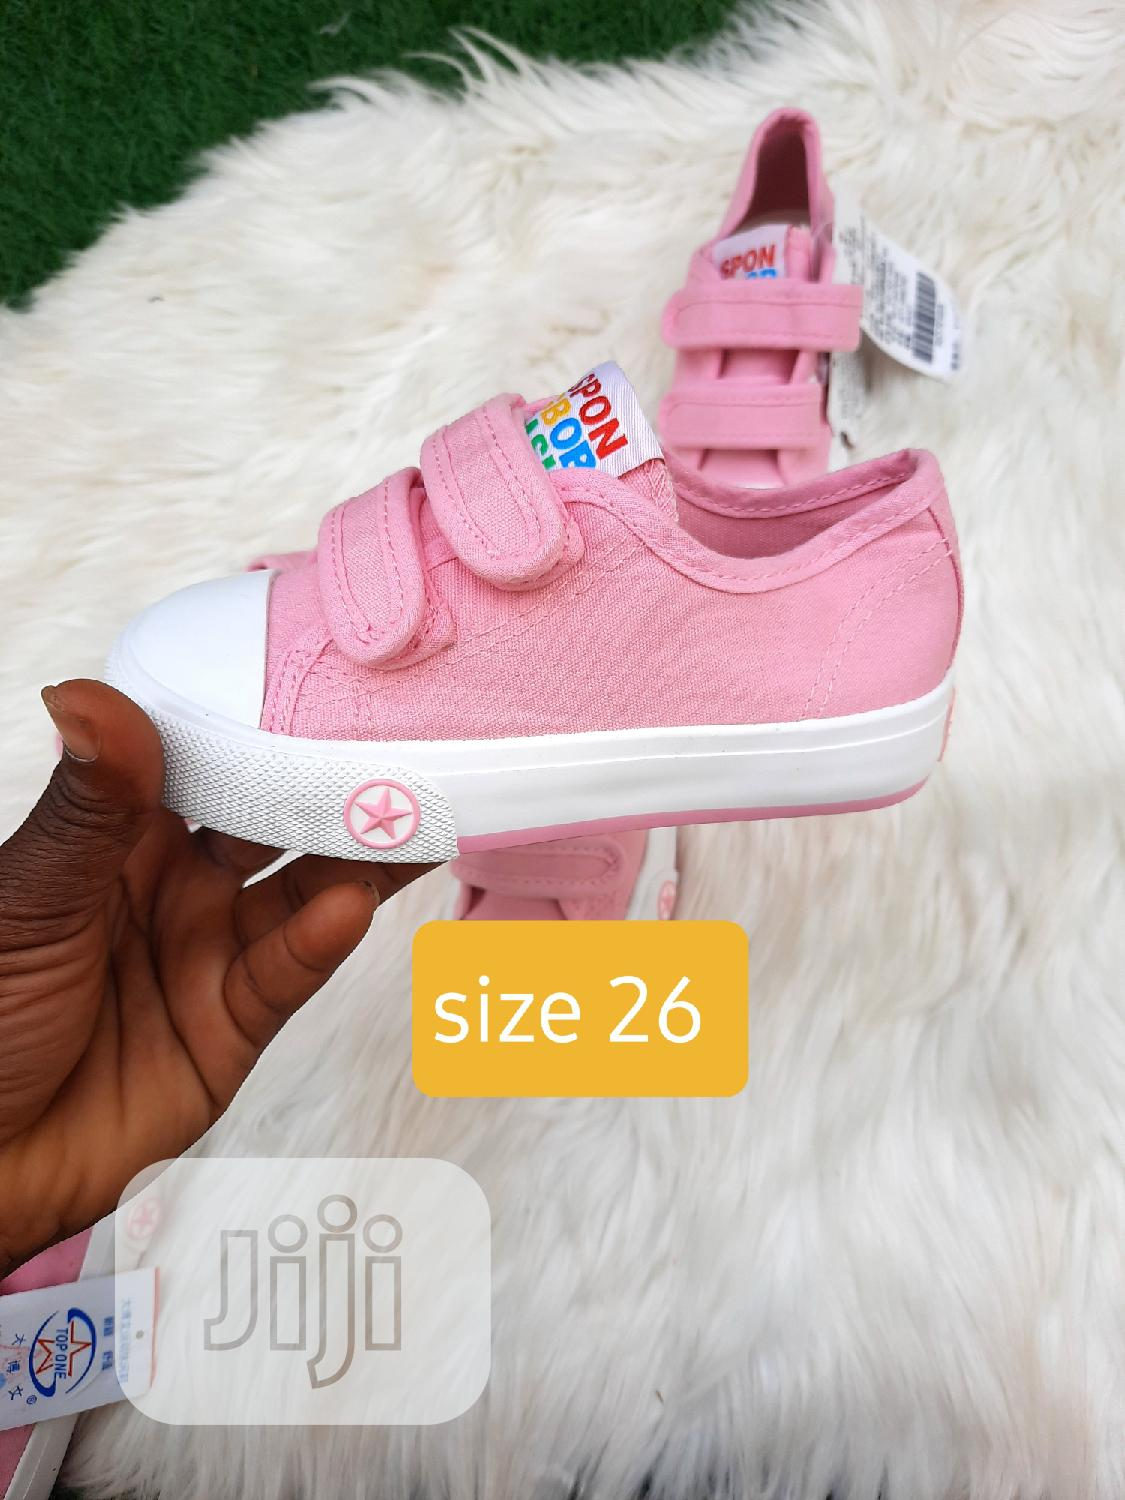 Brand New Kiddies Sneakers In Size 26